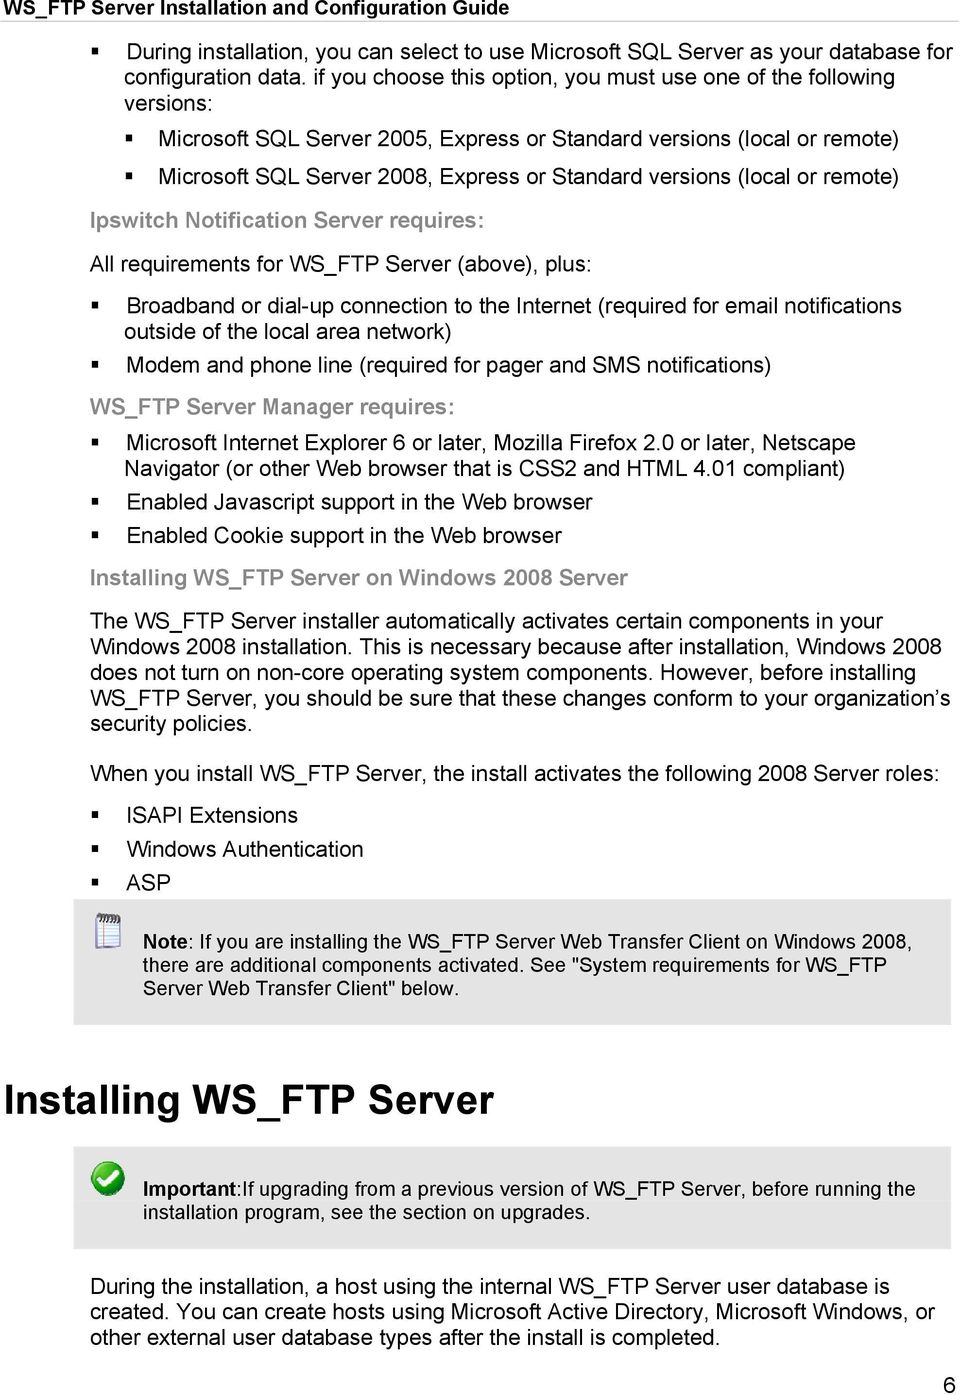 WS_FTP Server Installation and Configuration Guide - PDF